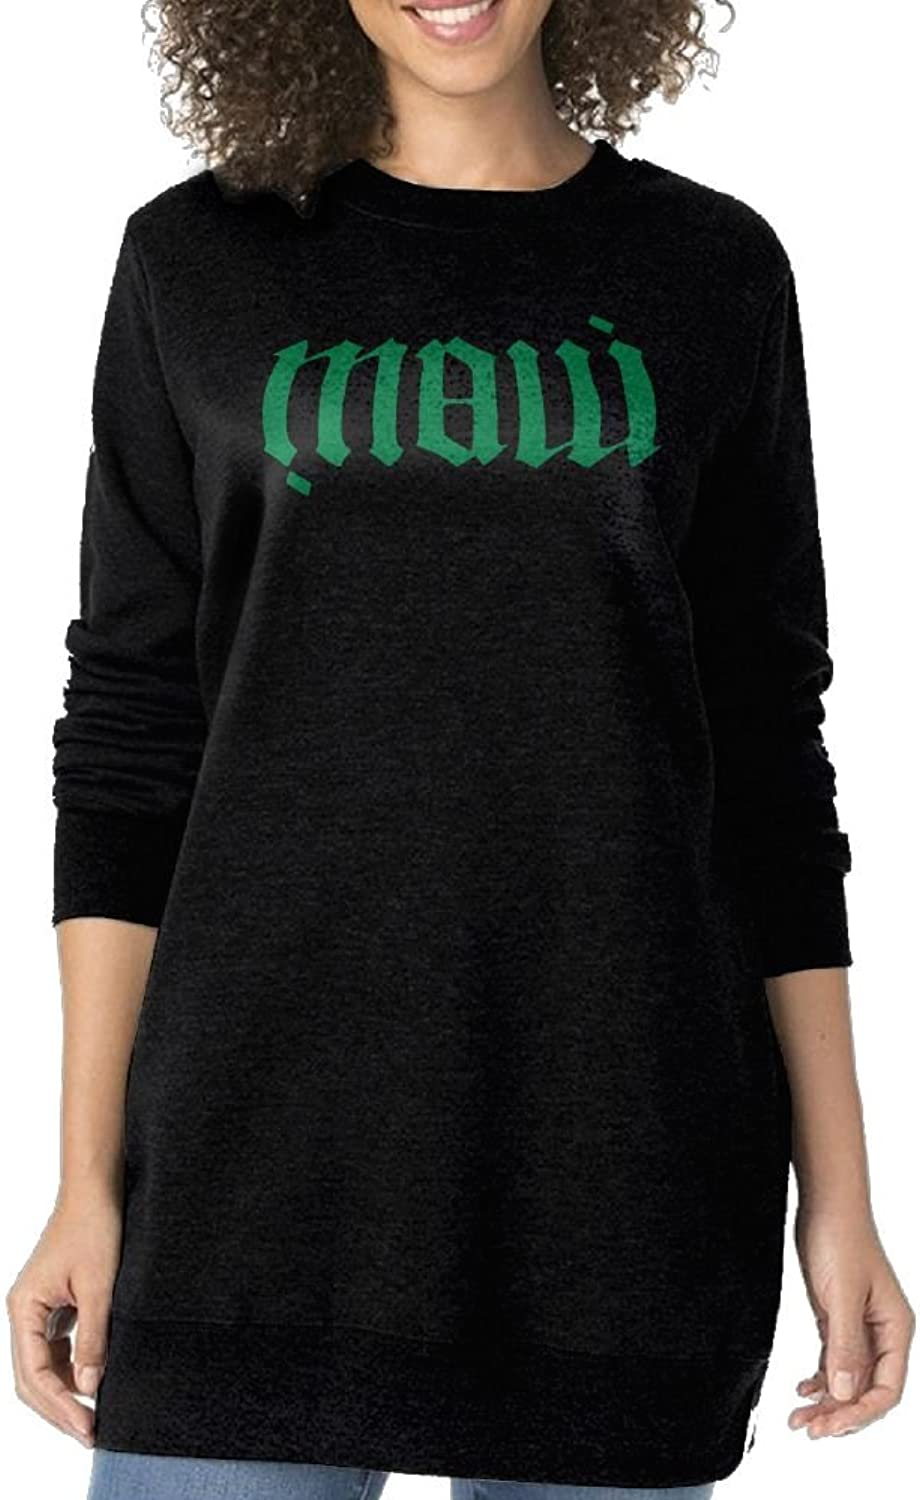 JDong618 Delicate Soft Long Sleeve Create Maui Tattoo Sweater Hoodies Black For Women